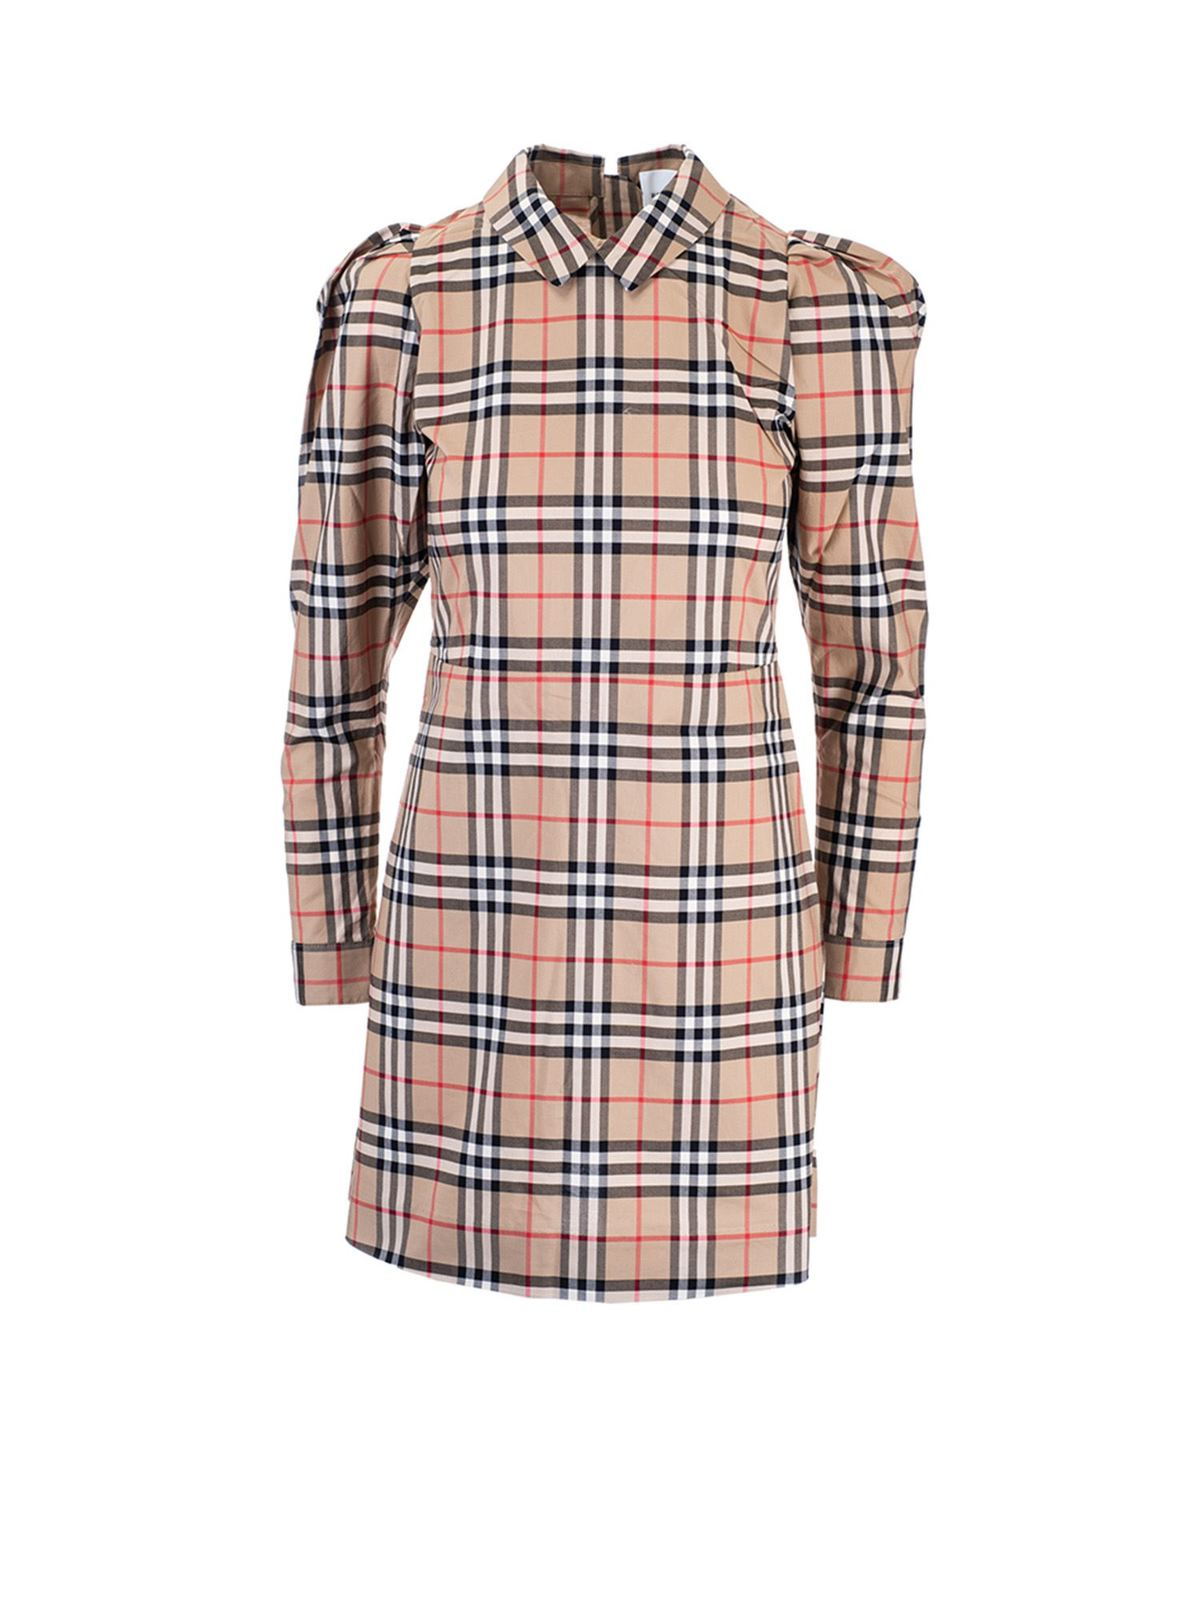 Burberry Kids' Beige Dress For Girl With Vintage Check